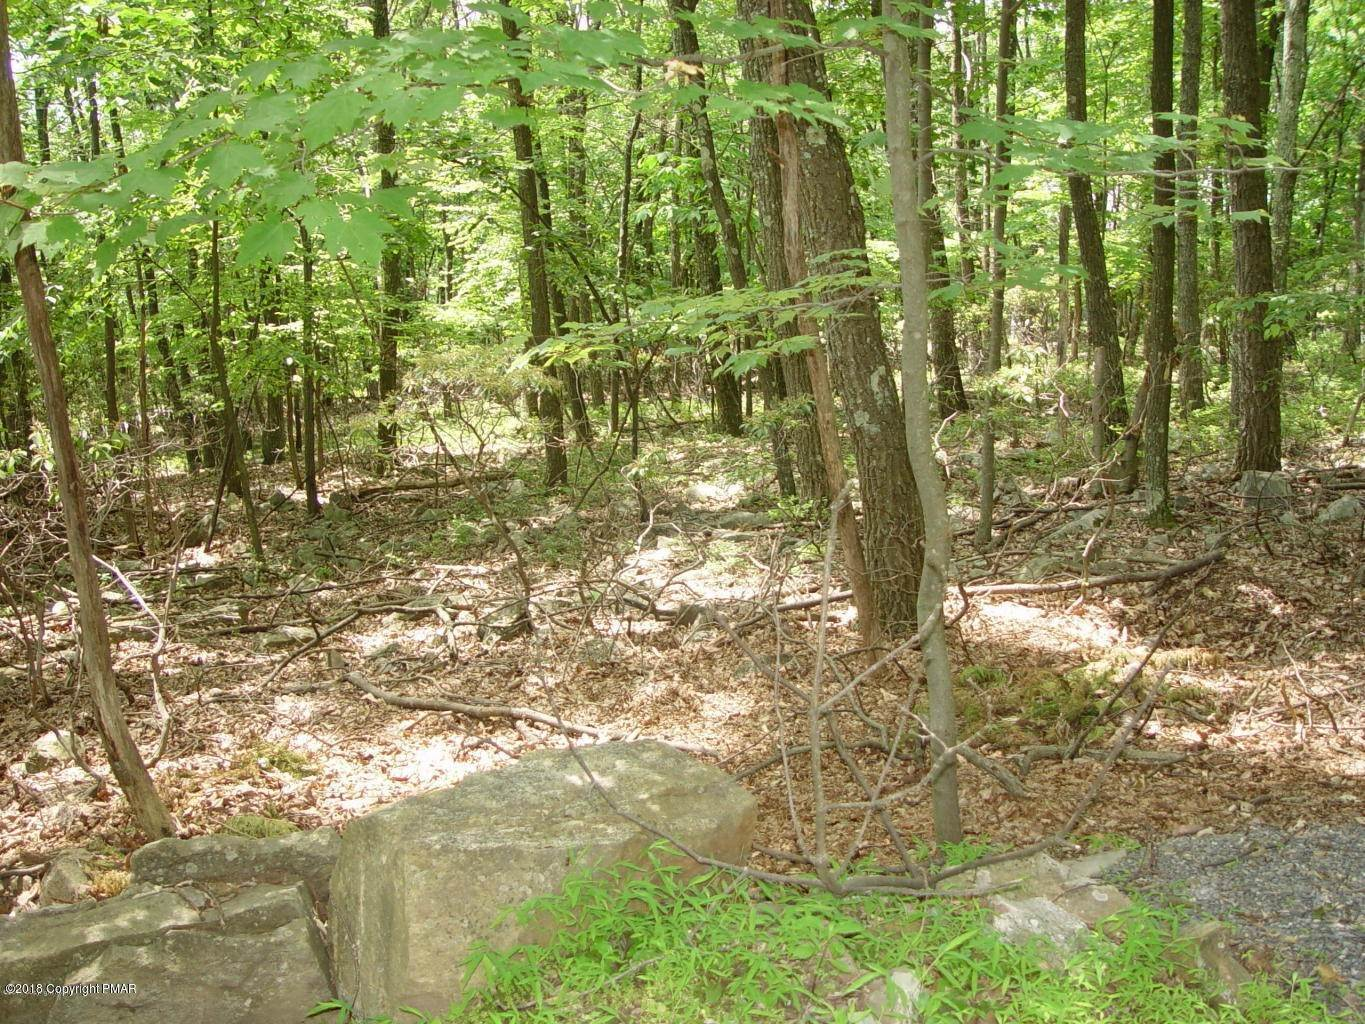 Land for Sale at Lot 197 Sec 18 Stony Hollow Rd Bushkill, Pennsylvania 18324 United States